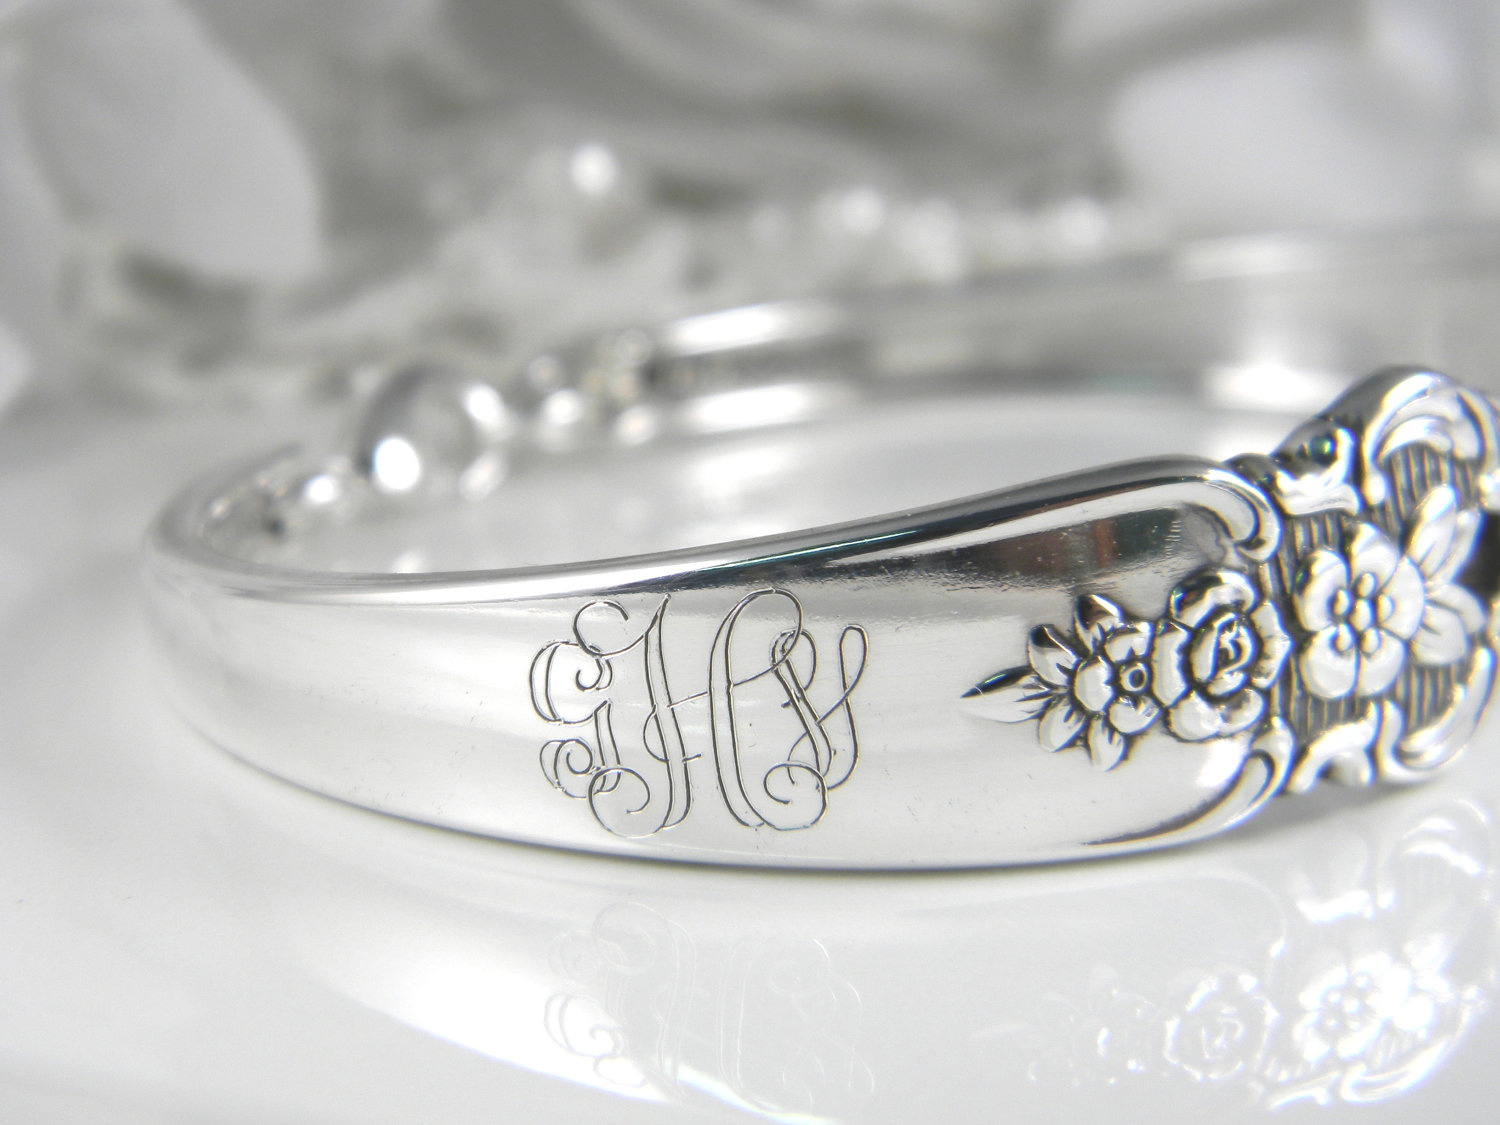 Ideas Wedding Party Gifts : handmade wedding ideas wedding party gifts vintage spoon bracelet ...